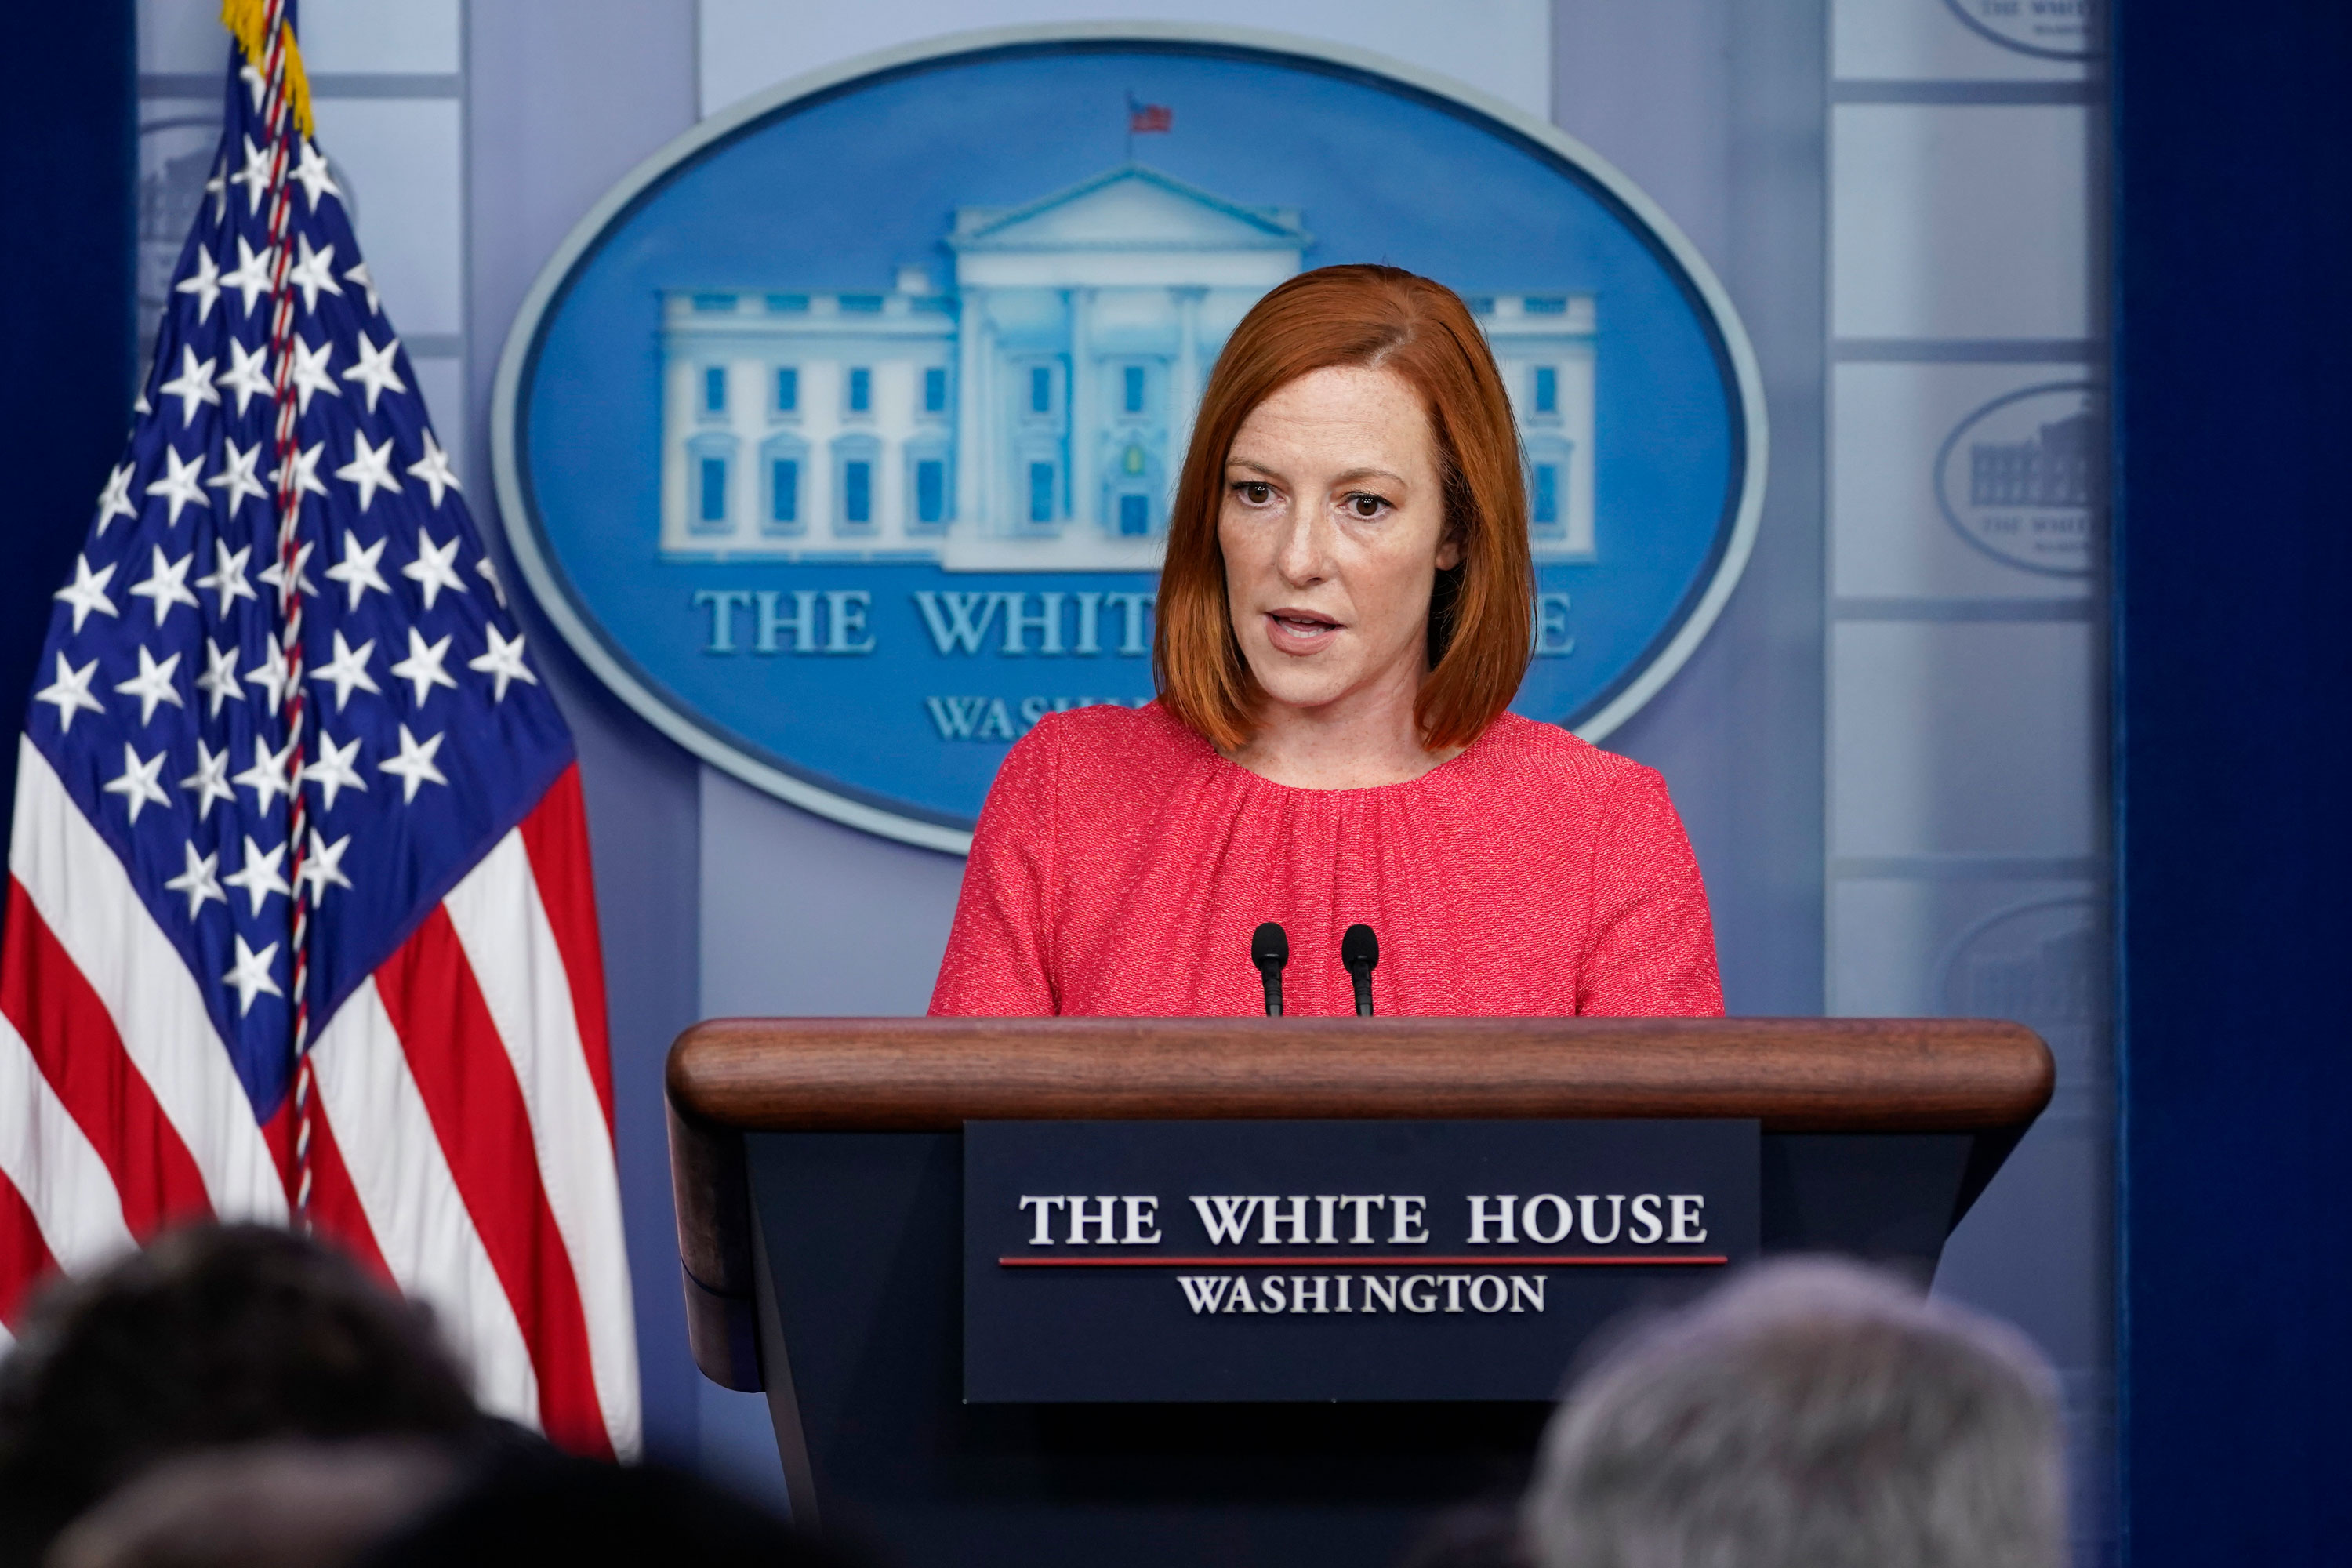 White House press secretary Jen Psaki speaks during the daily briefing at the White House in Washington, DC, on August 26.